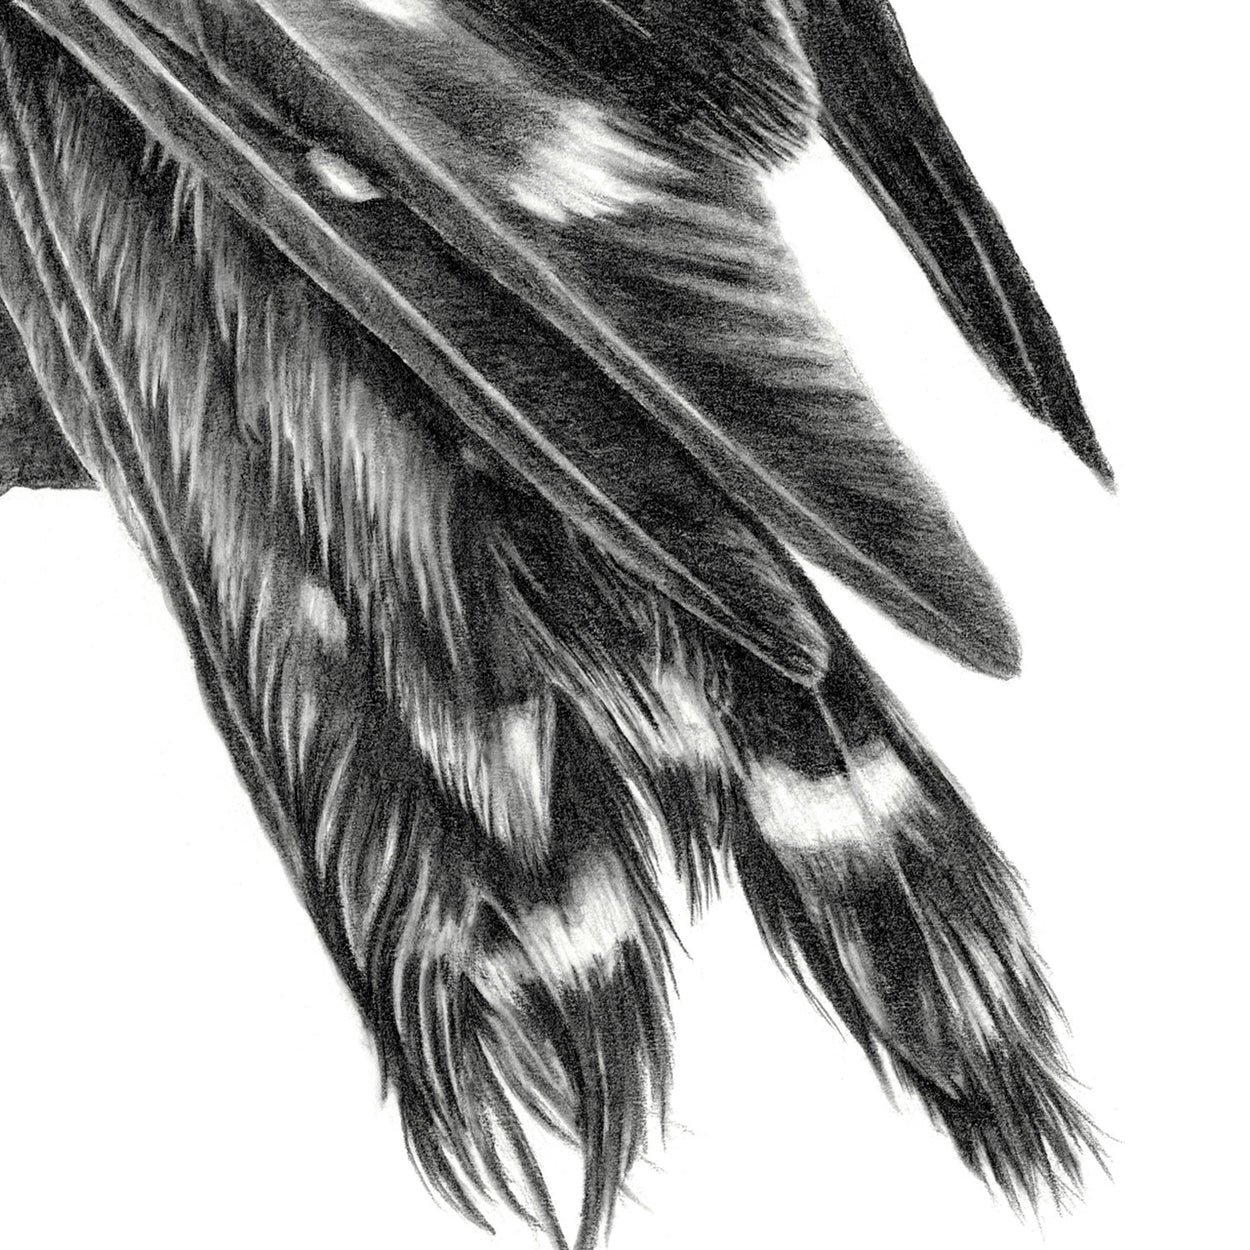 Merlin Tail Drawing Close-up - The Thriving Wild